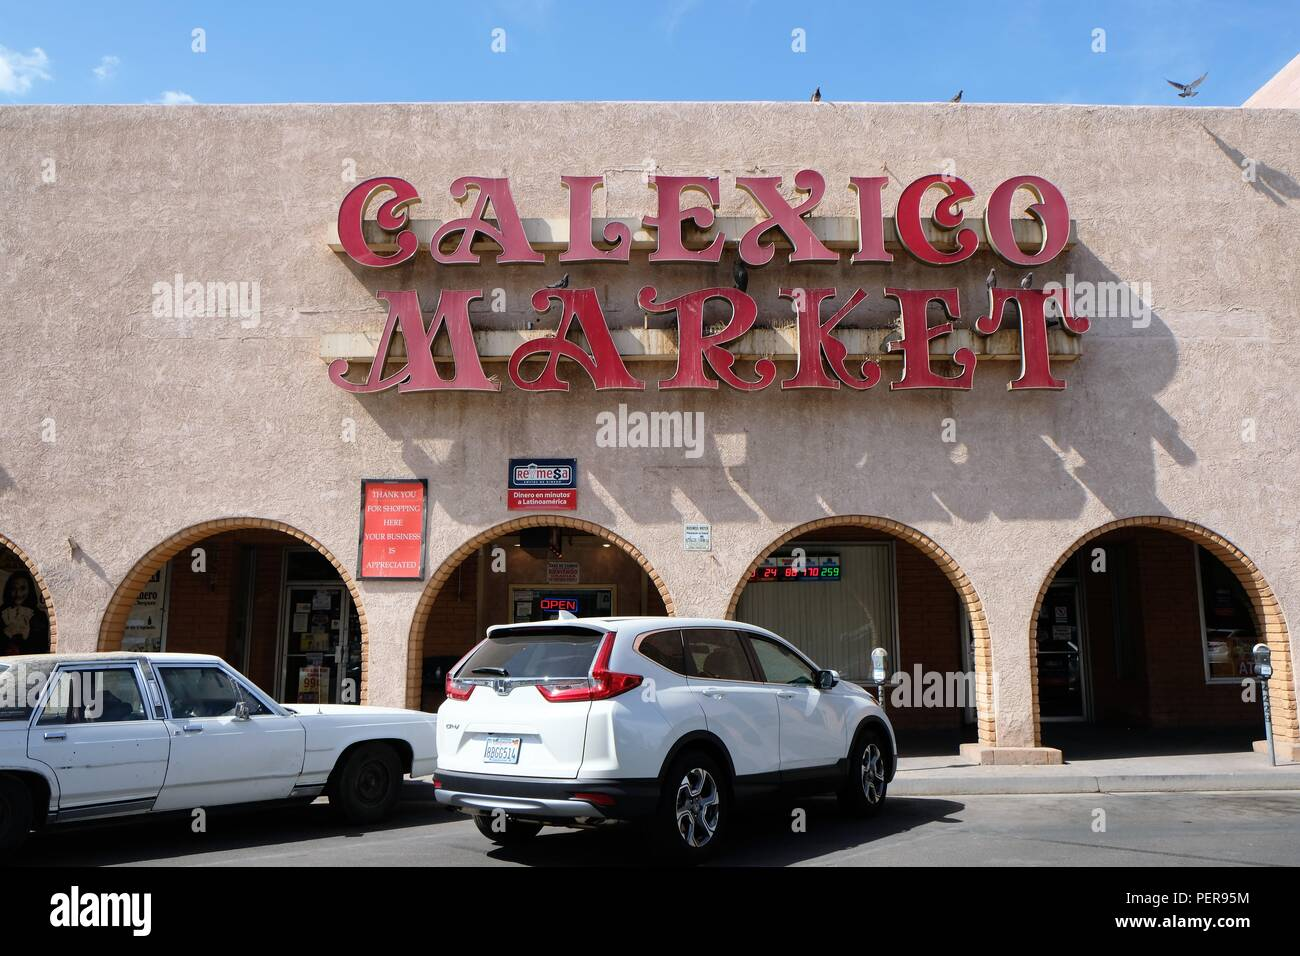 Border Store Stock Photos & Border Store Stock Images - Alamy